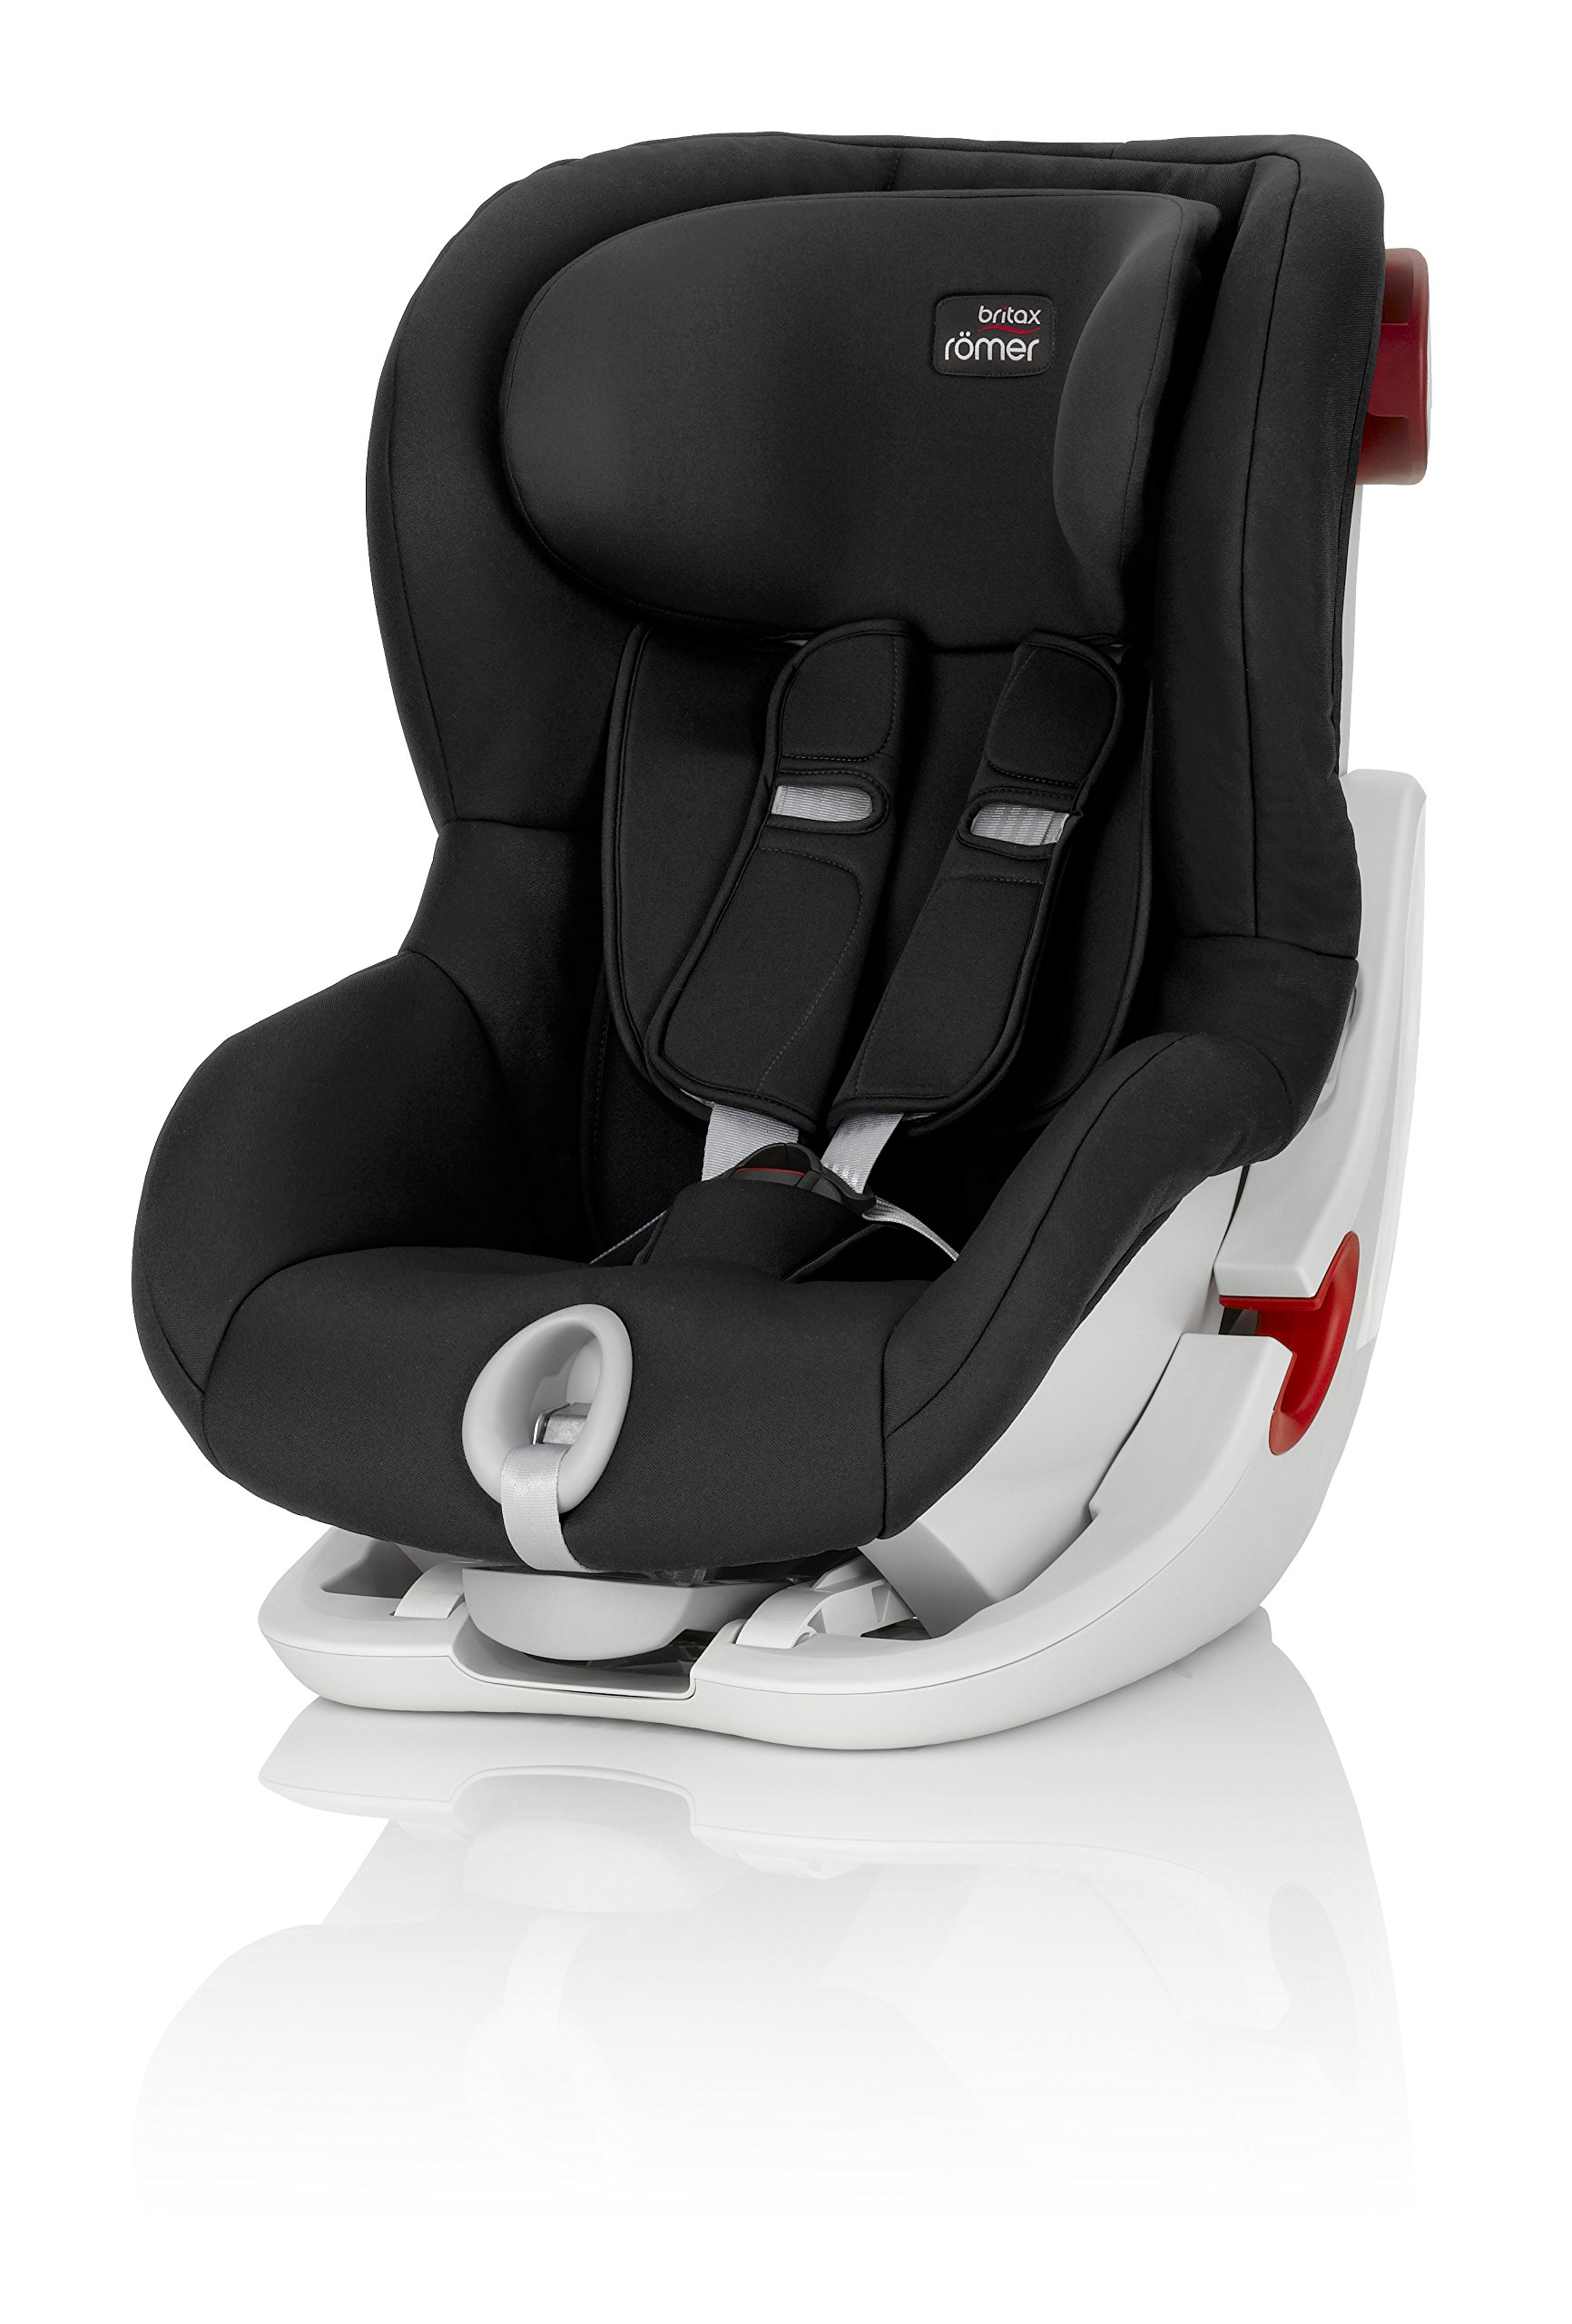 Britax Römer KING II Group 1 (9-18kg) Car Seat - Cosmos Black Britax Römer Easy installation - with tilting seat and patented seat belt tensioning system Optimum protection - performance chest pads, deep, padded side 1